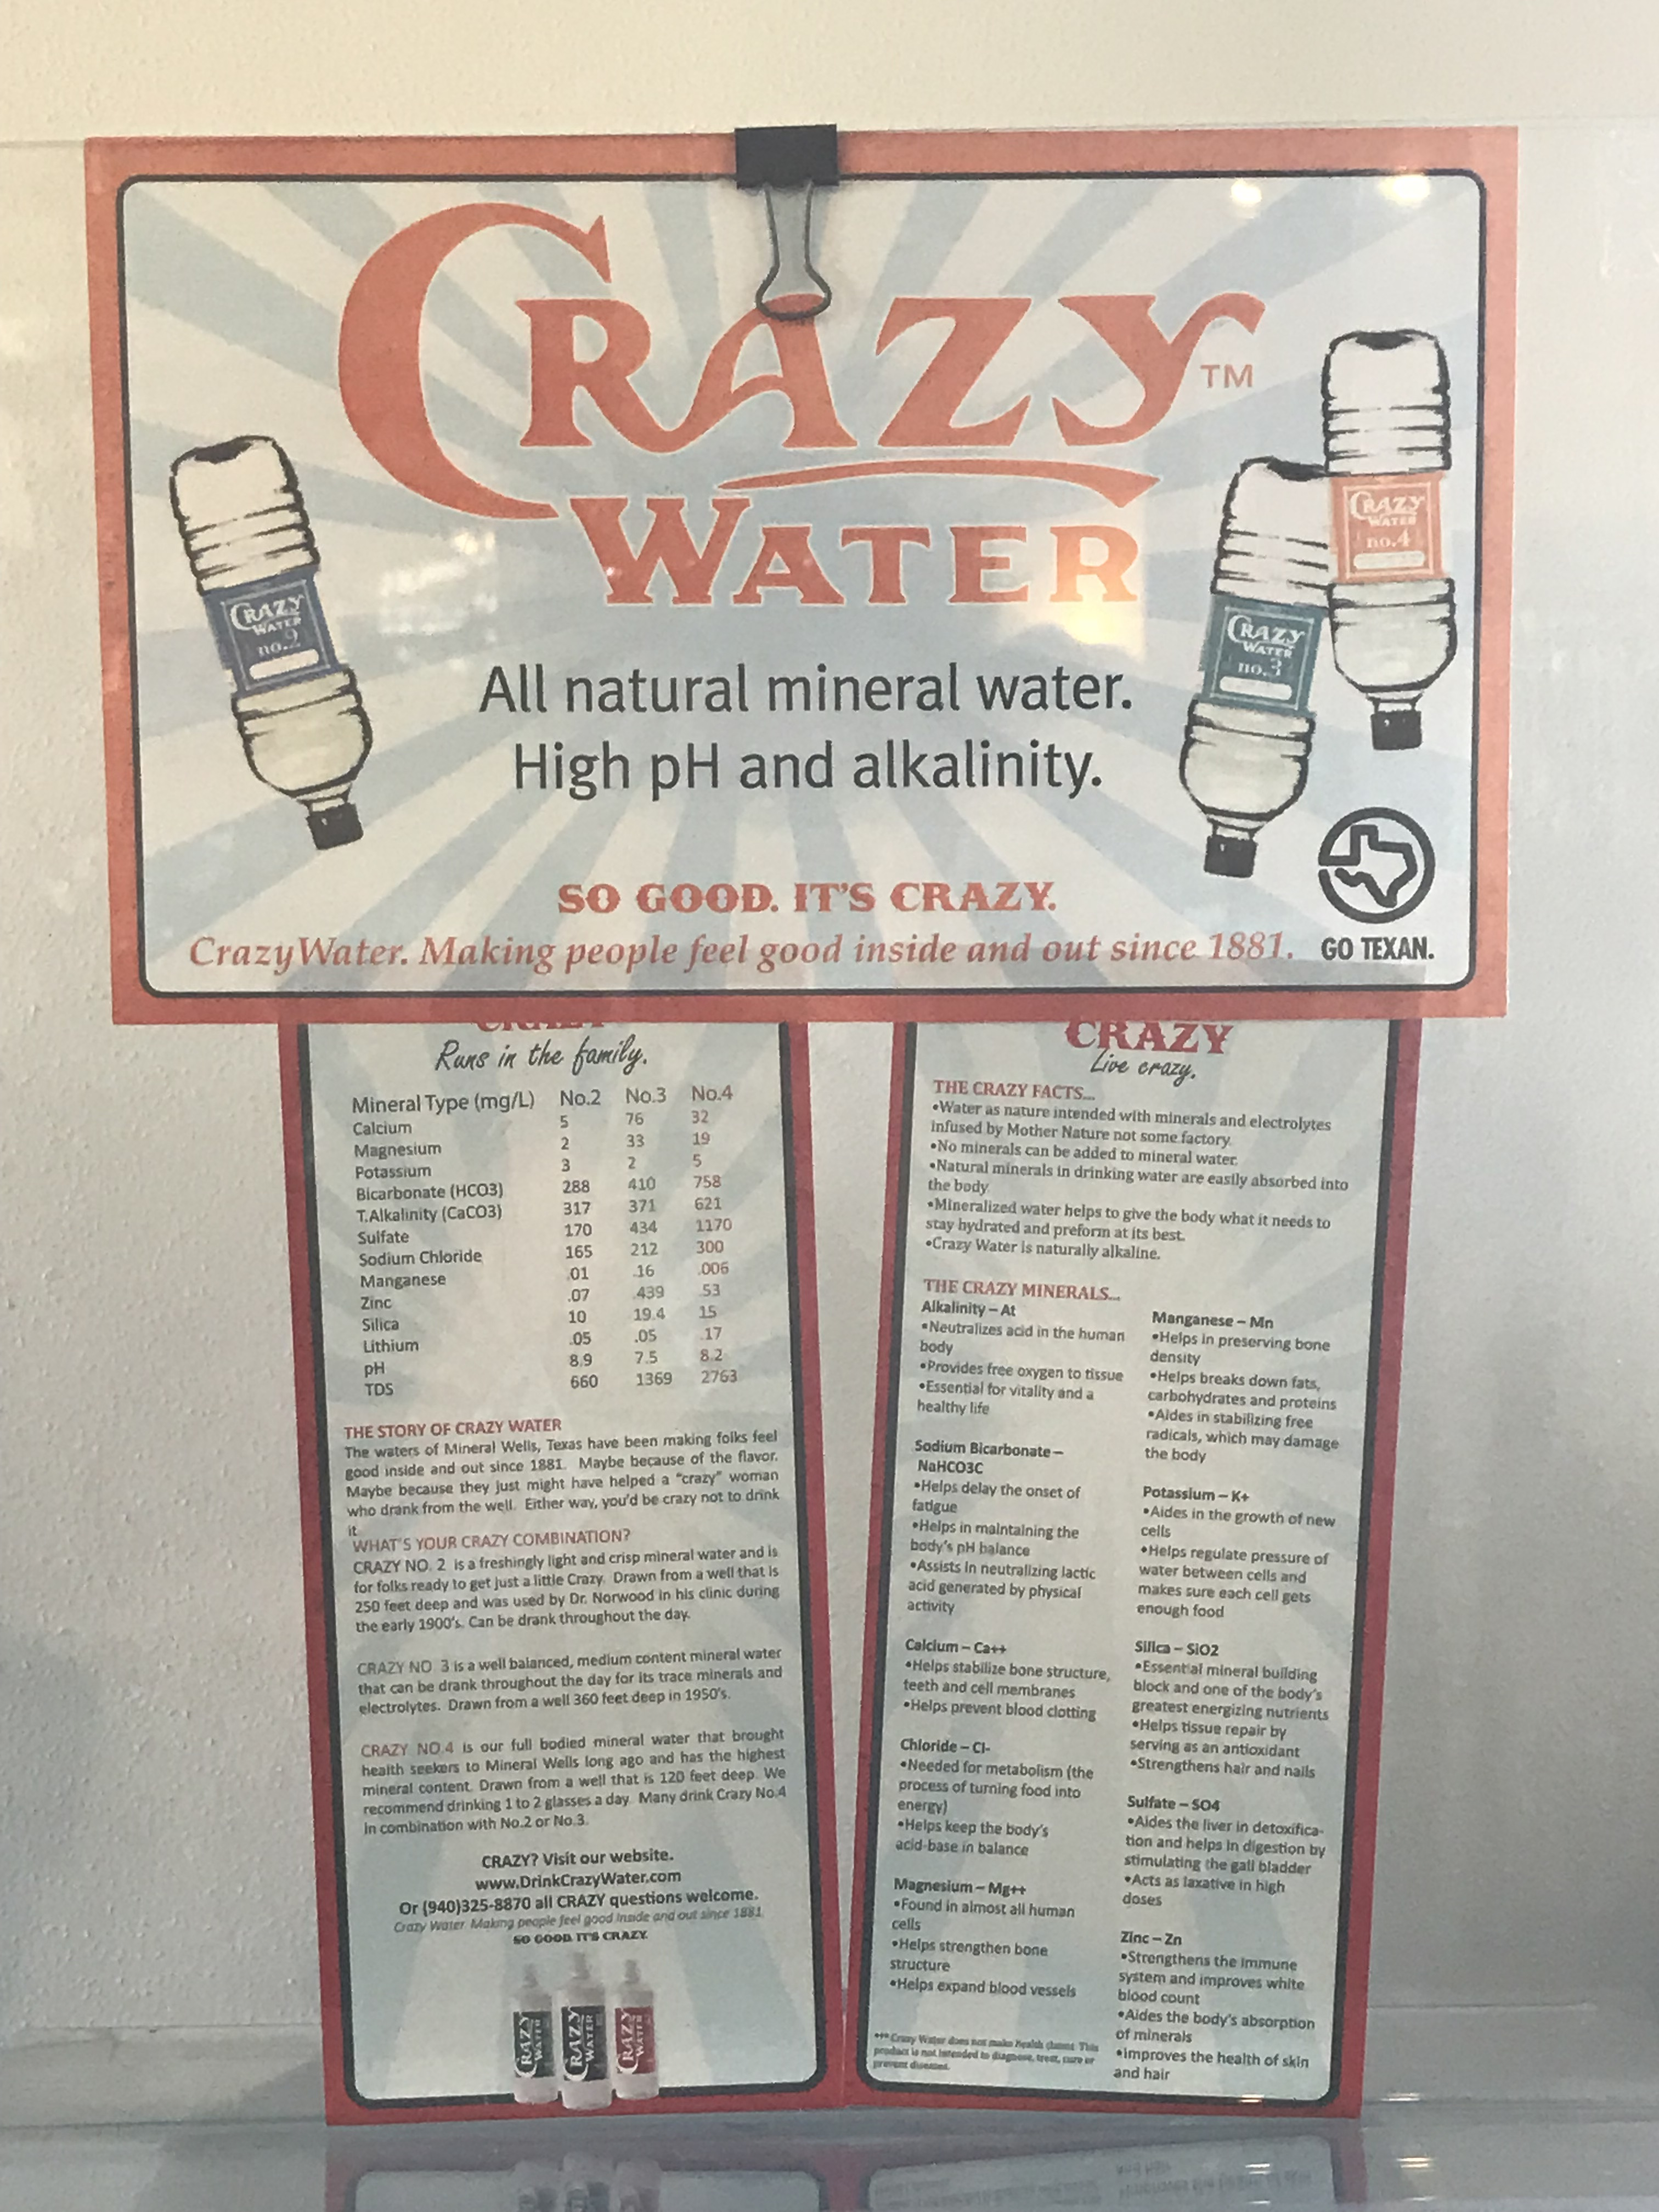 small sign talking about chemical makeup of the mineral water for sale